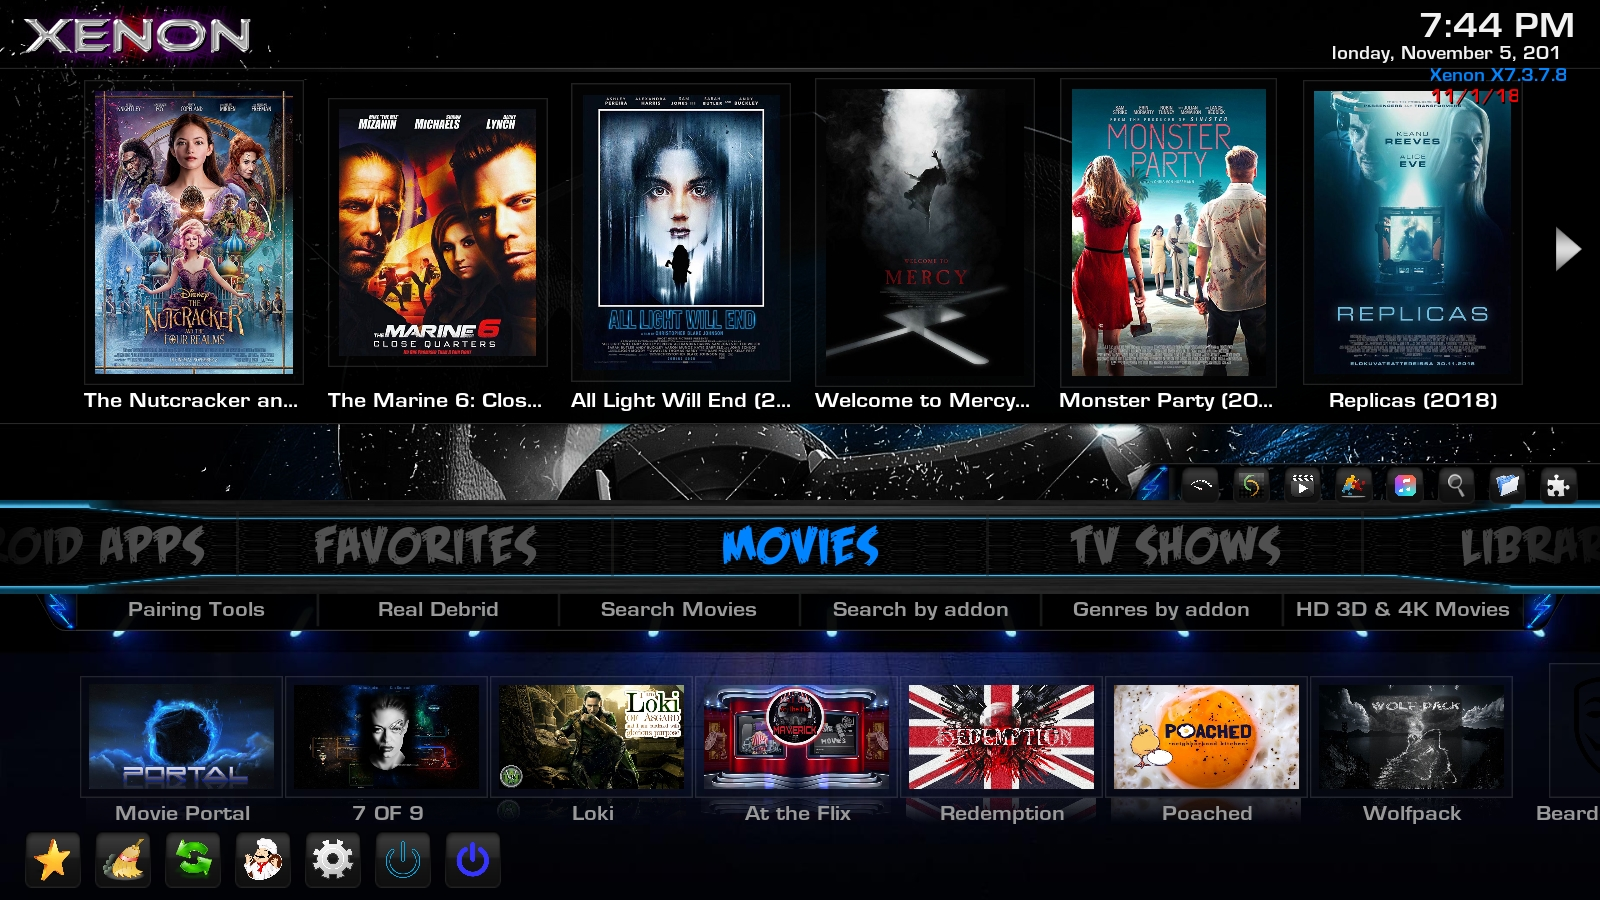 DIGGZ XENON BUILD FOR KODI 17 6 FROM THE CHEF DIGGZ WIZARD